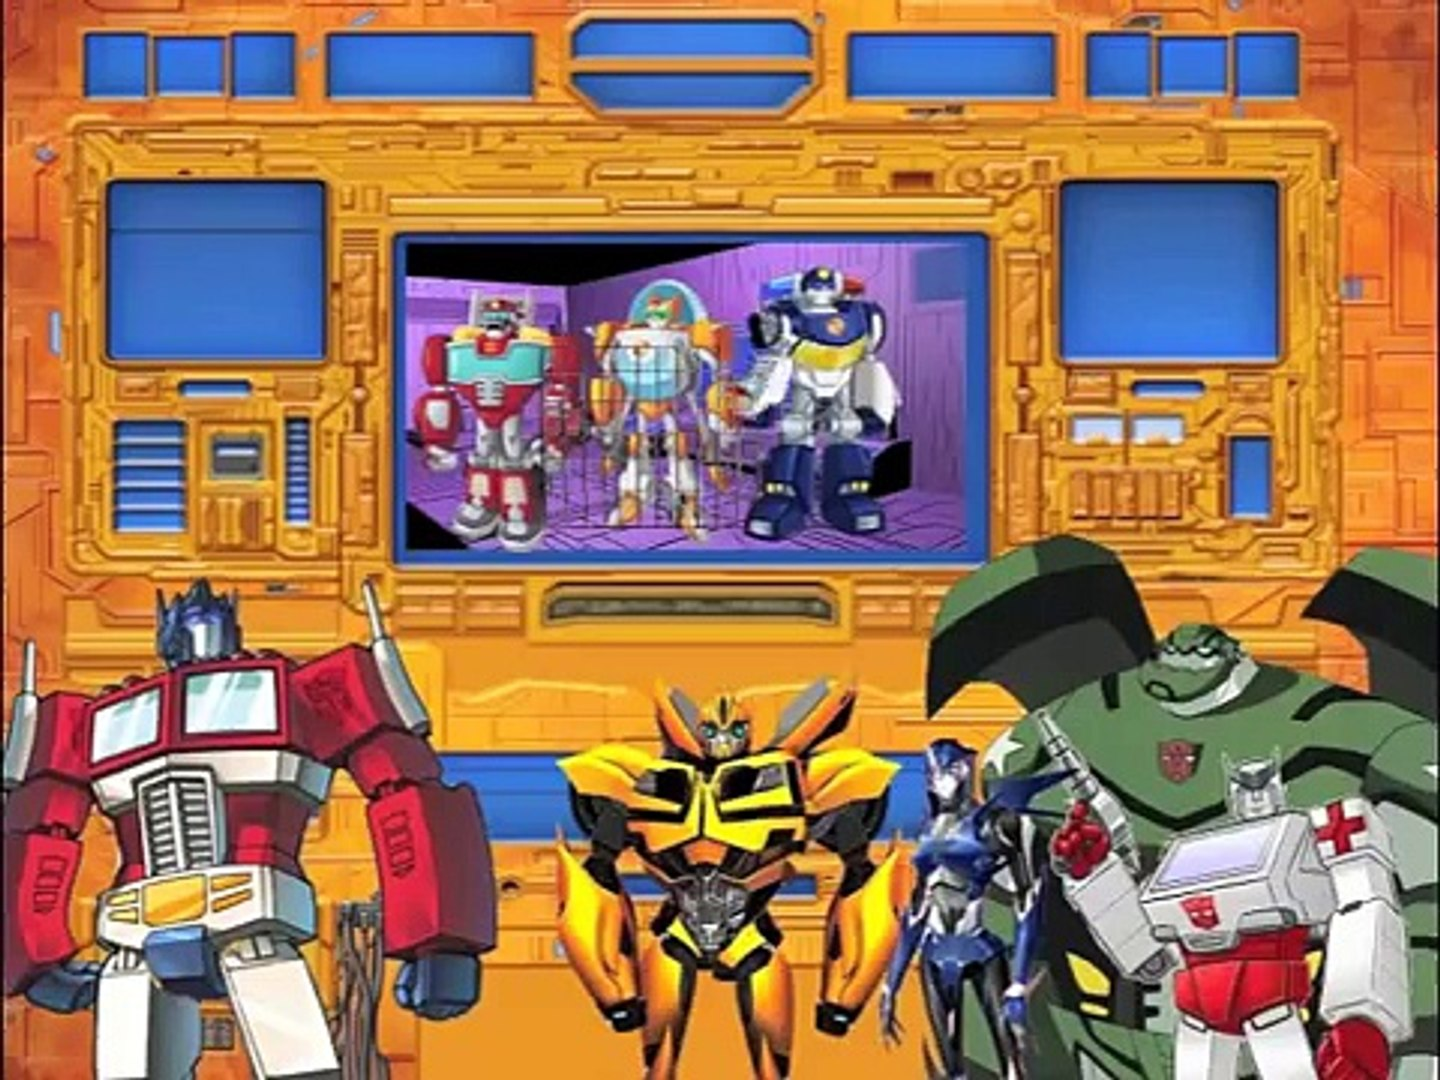 Transformers: Attack of the Rescue Bots